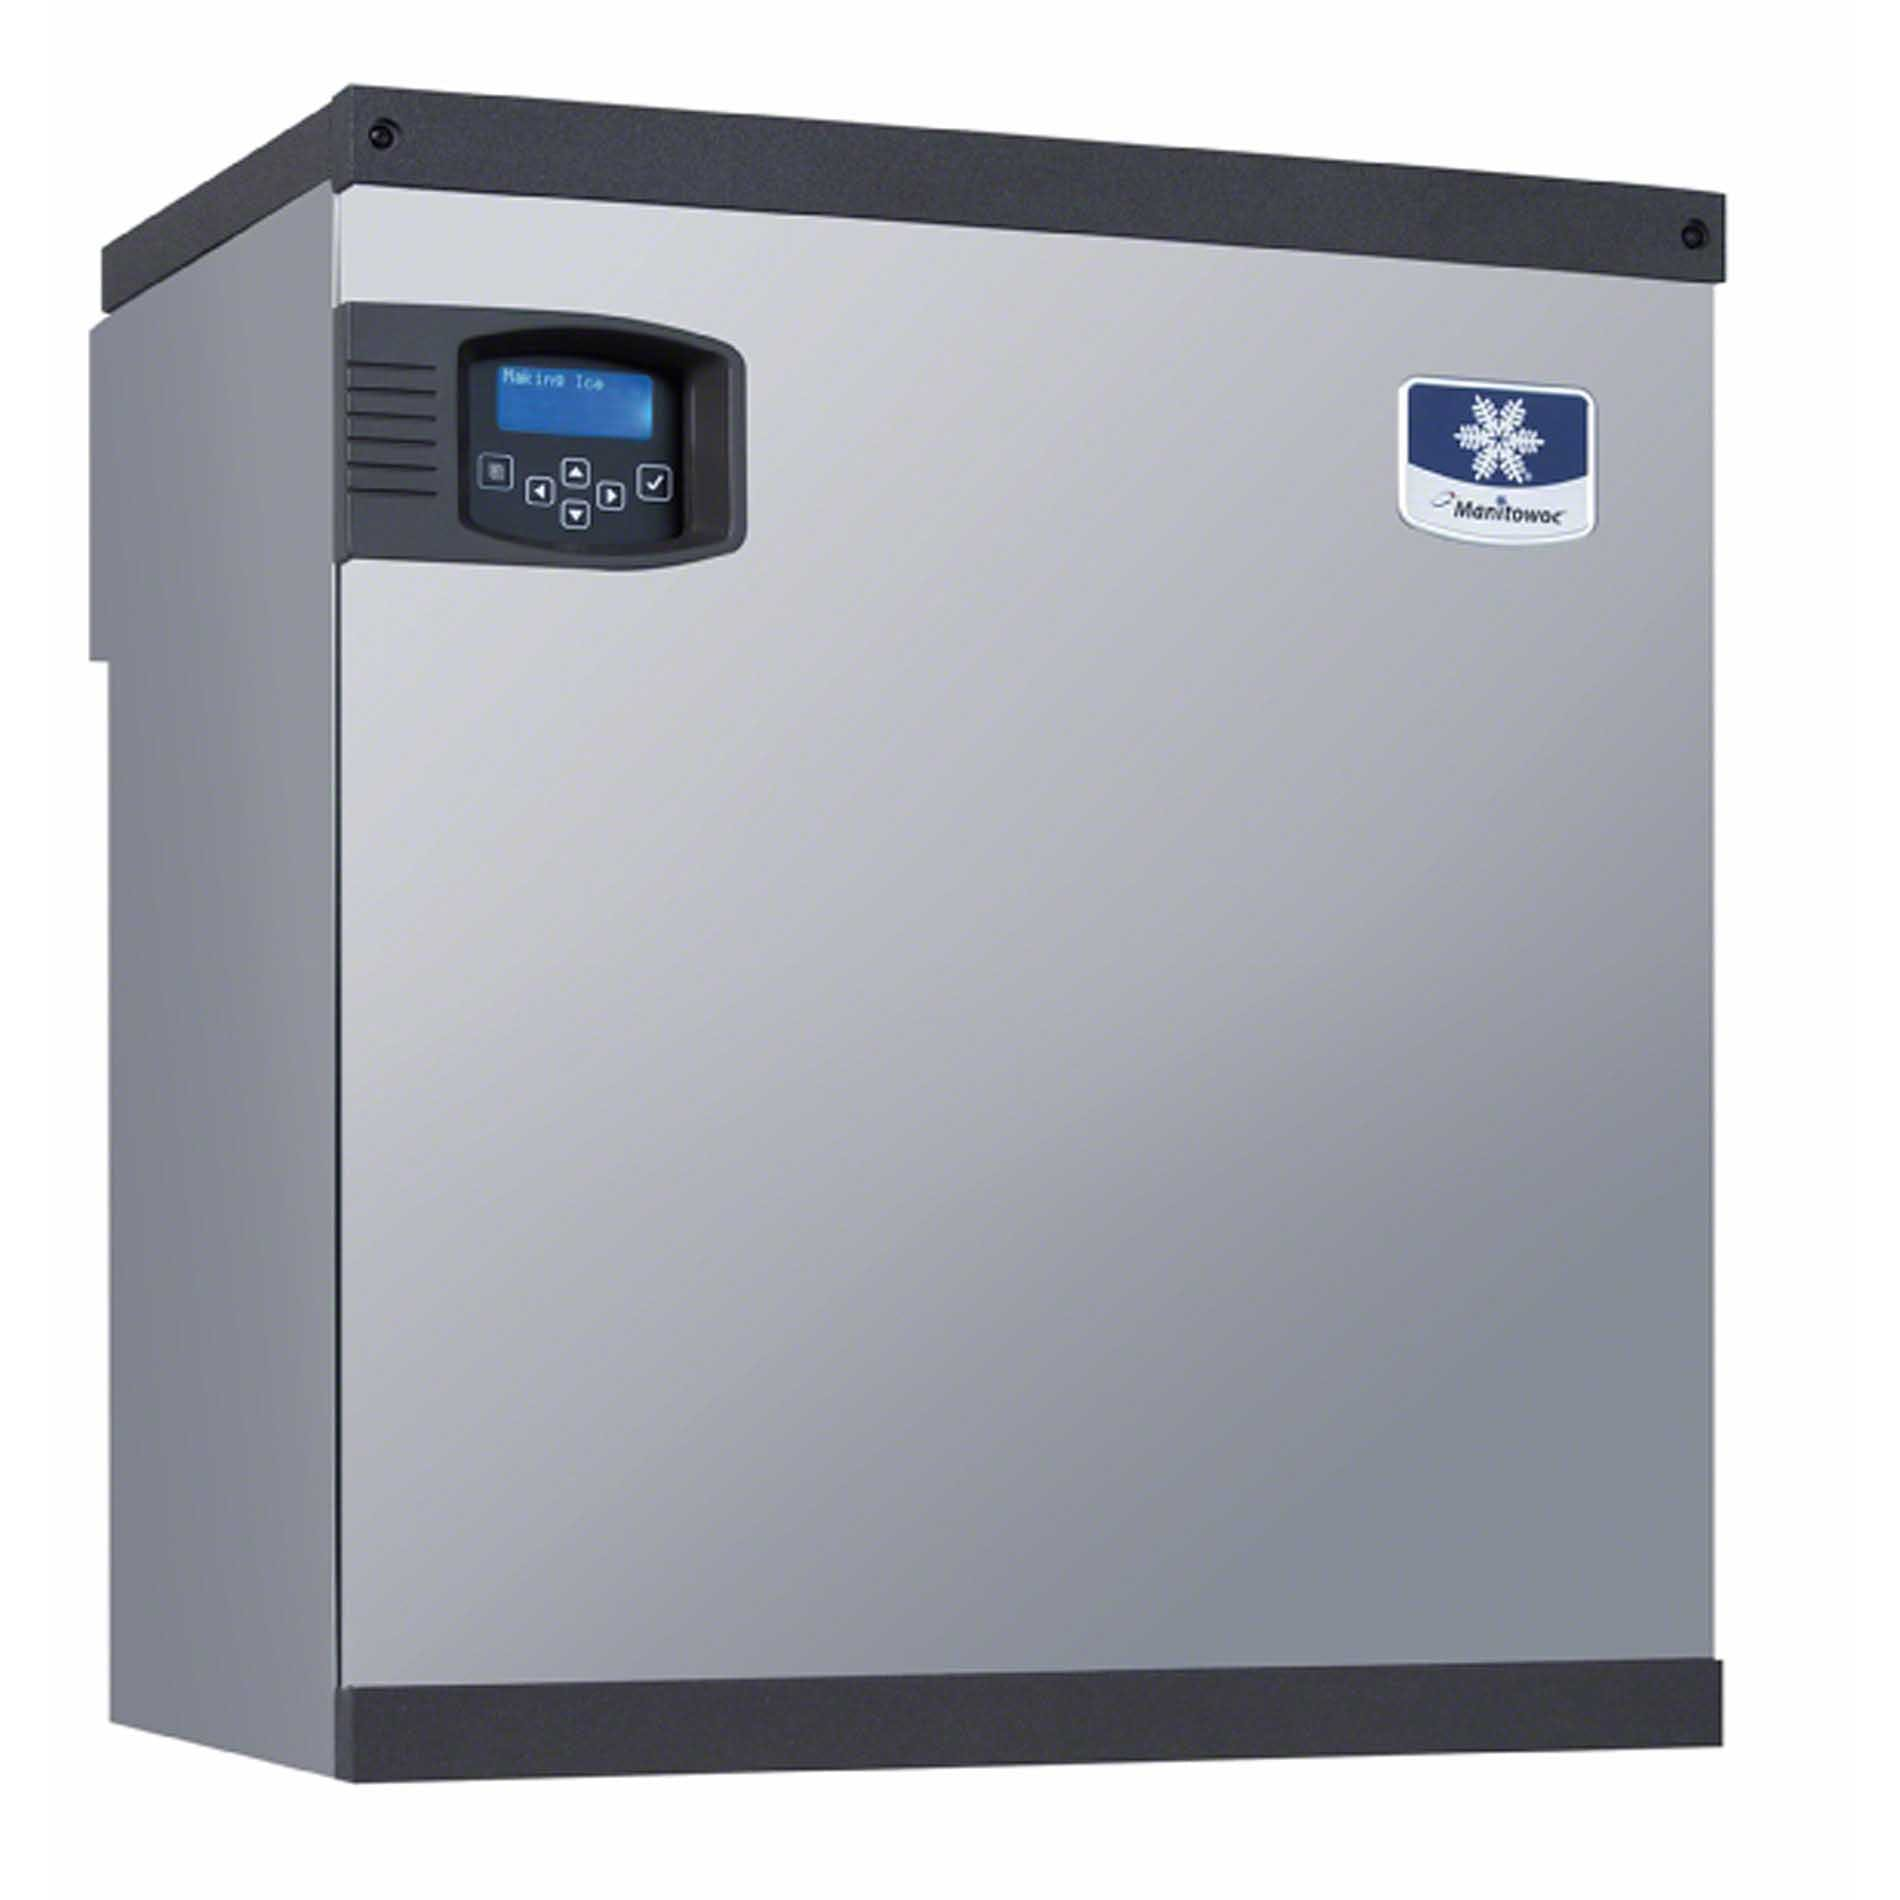 Manitowoc - IB-0696YC 240 lb Ice/Beverage Series Remote Ice Cube Machine Ice machine sold by Food Service Warehouse